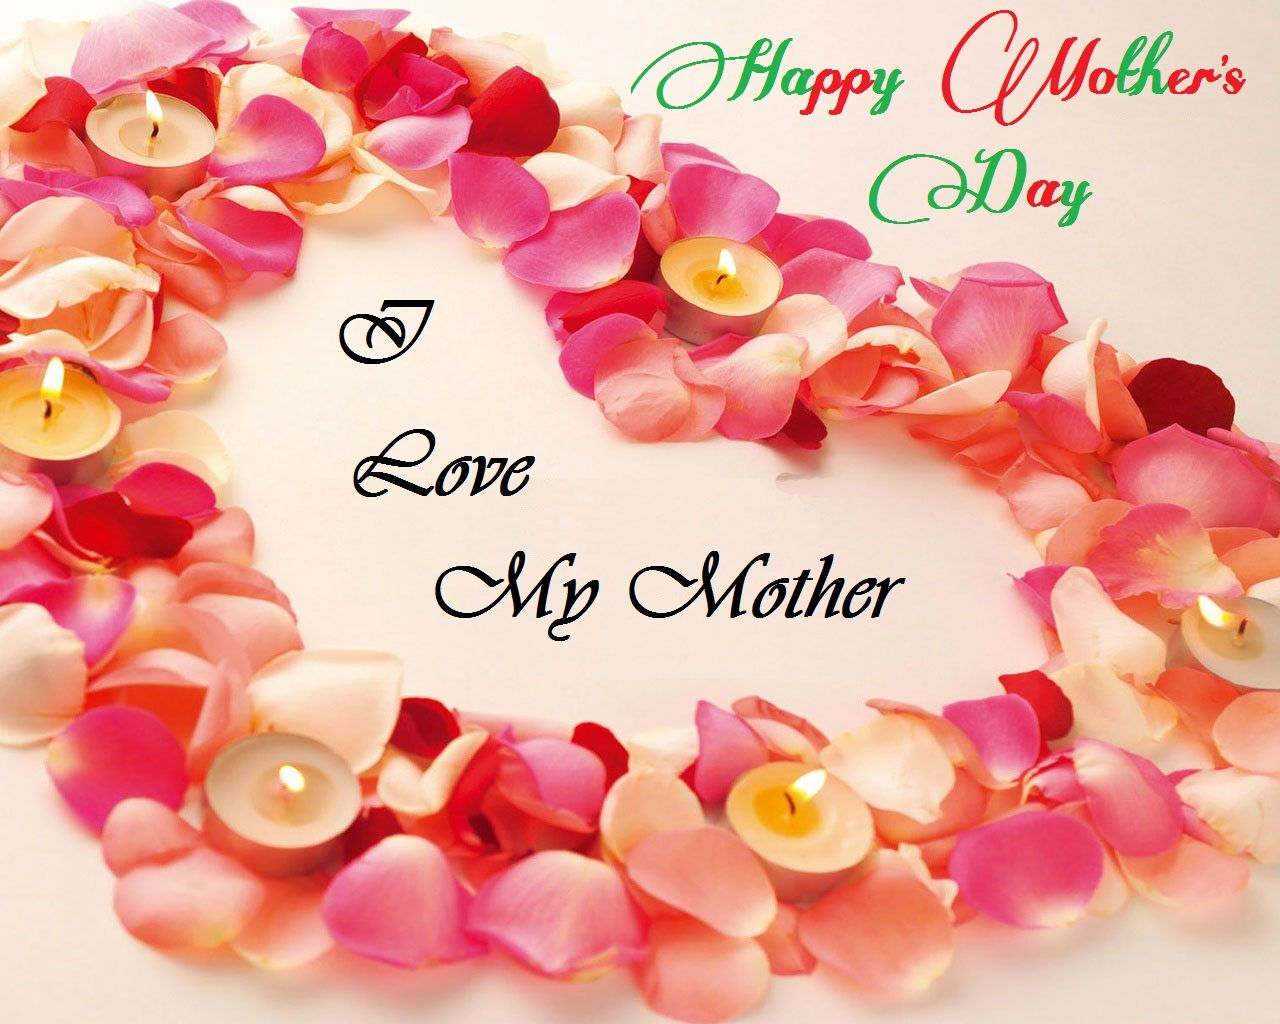 Hd widescreenmotherdaywishescards happt mothers day 2015 hd widescreenmotherdaywishescards kristyandbryce Gallery